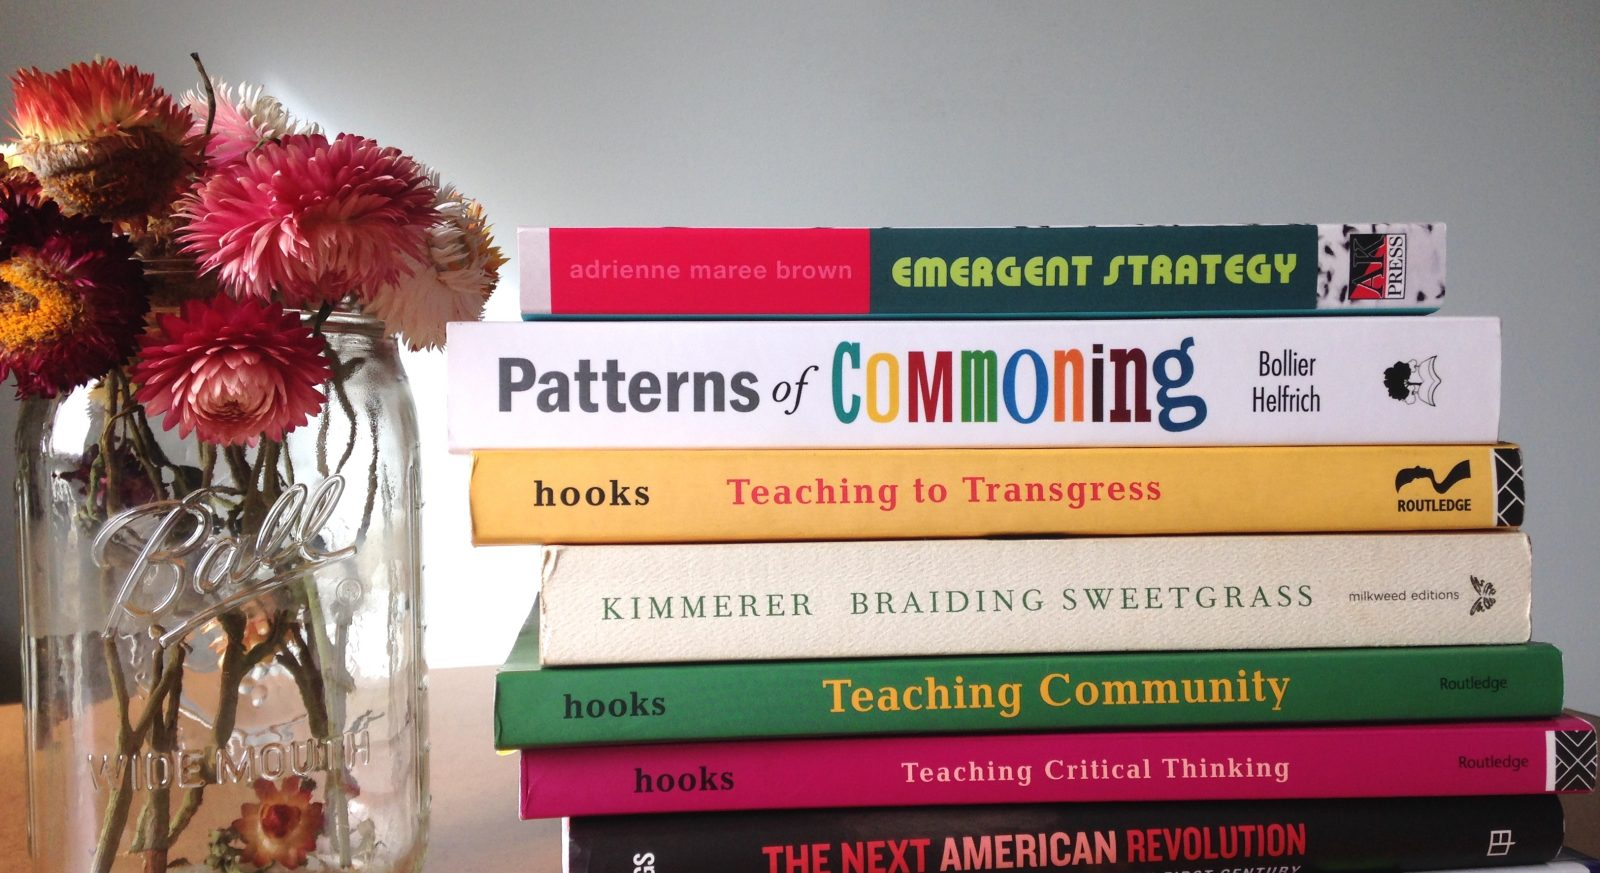 stack of books with jar of straw flowers